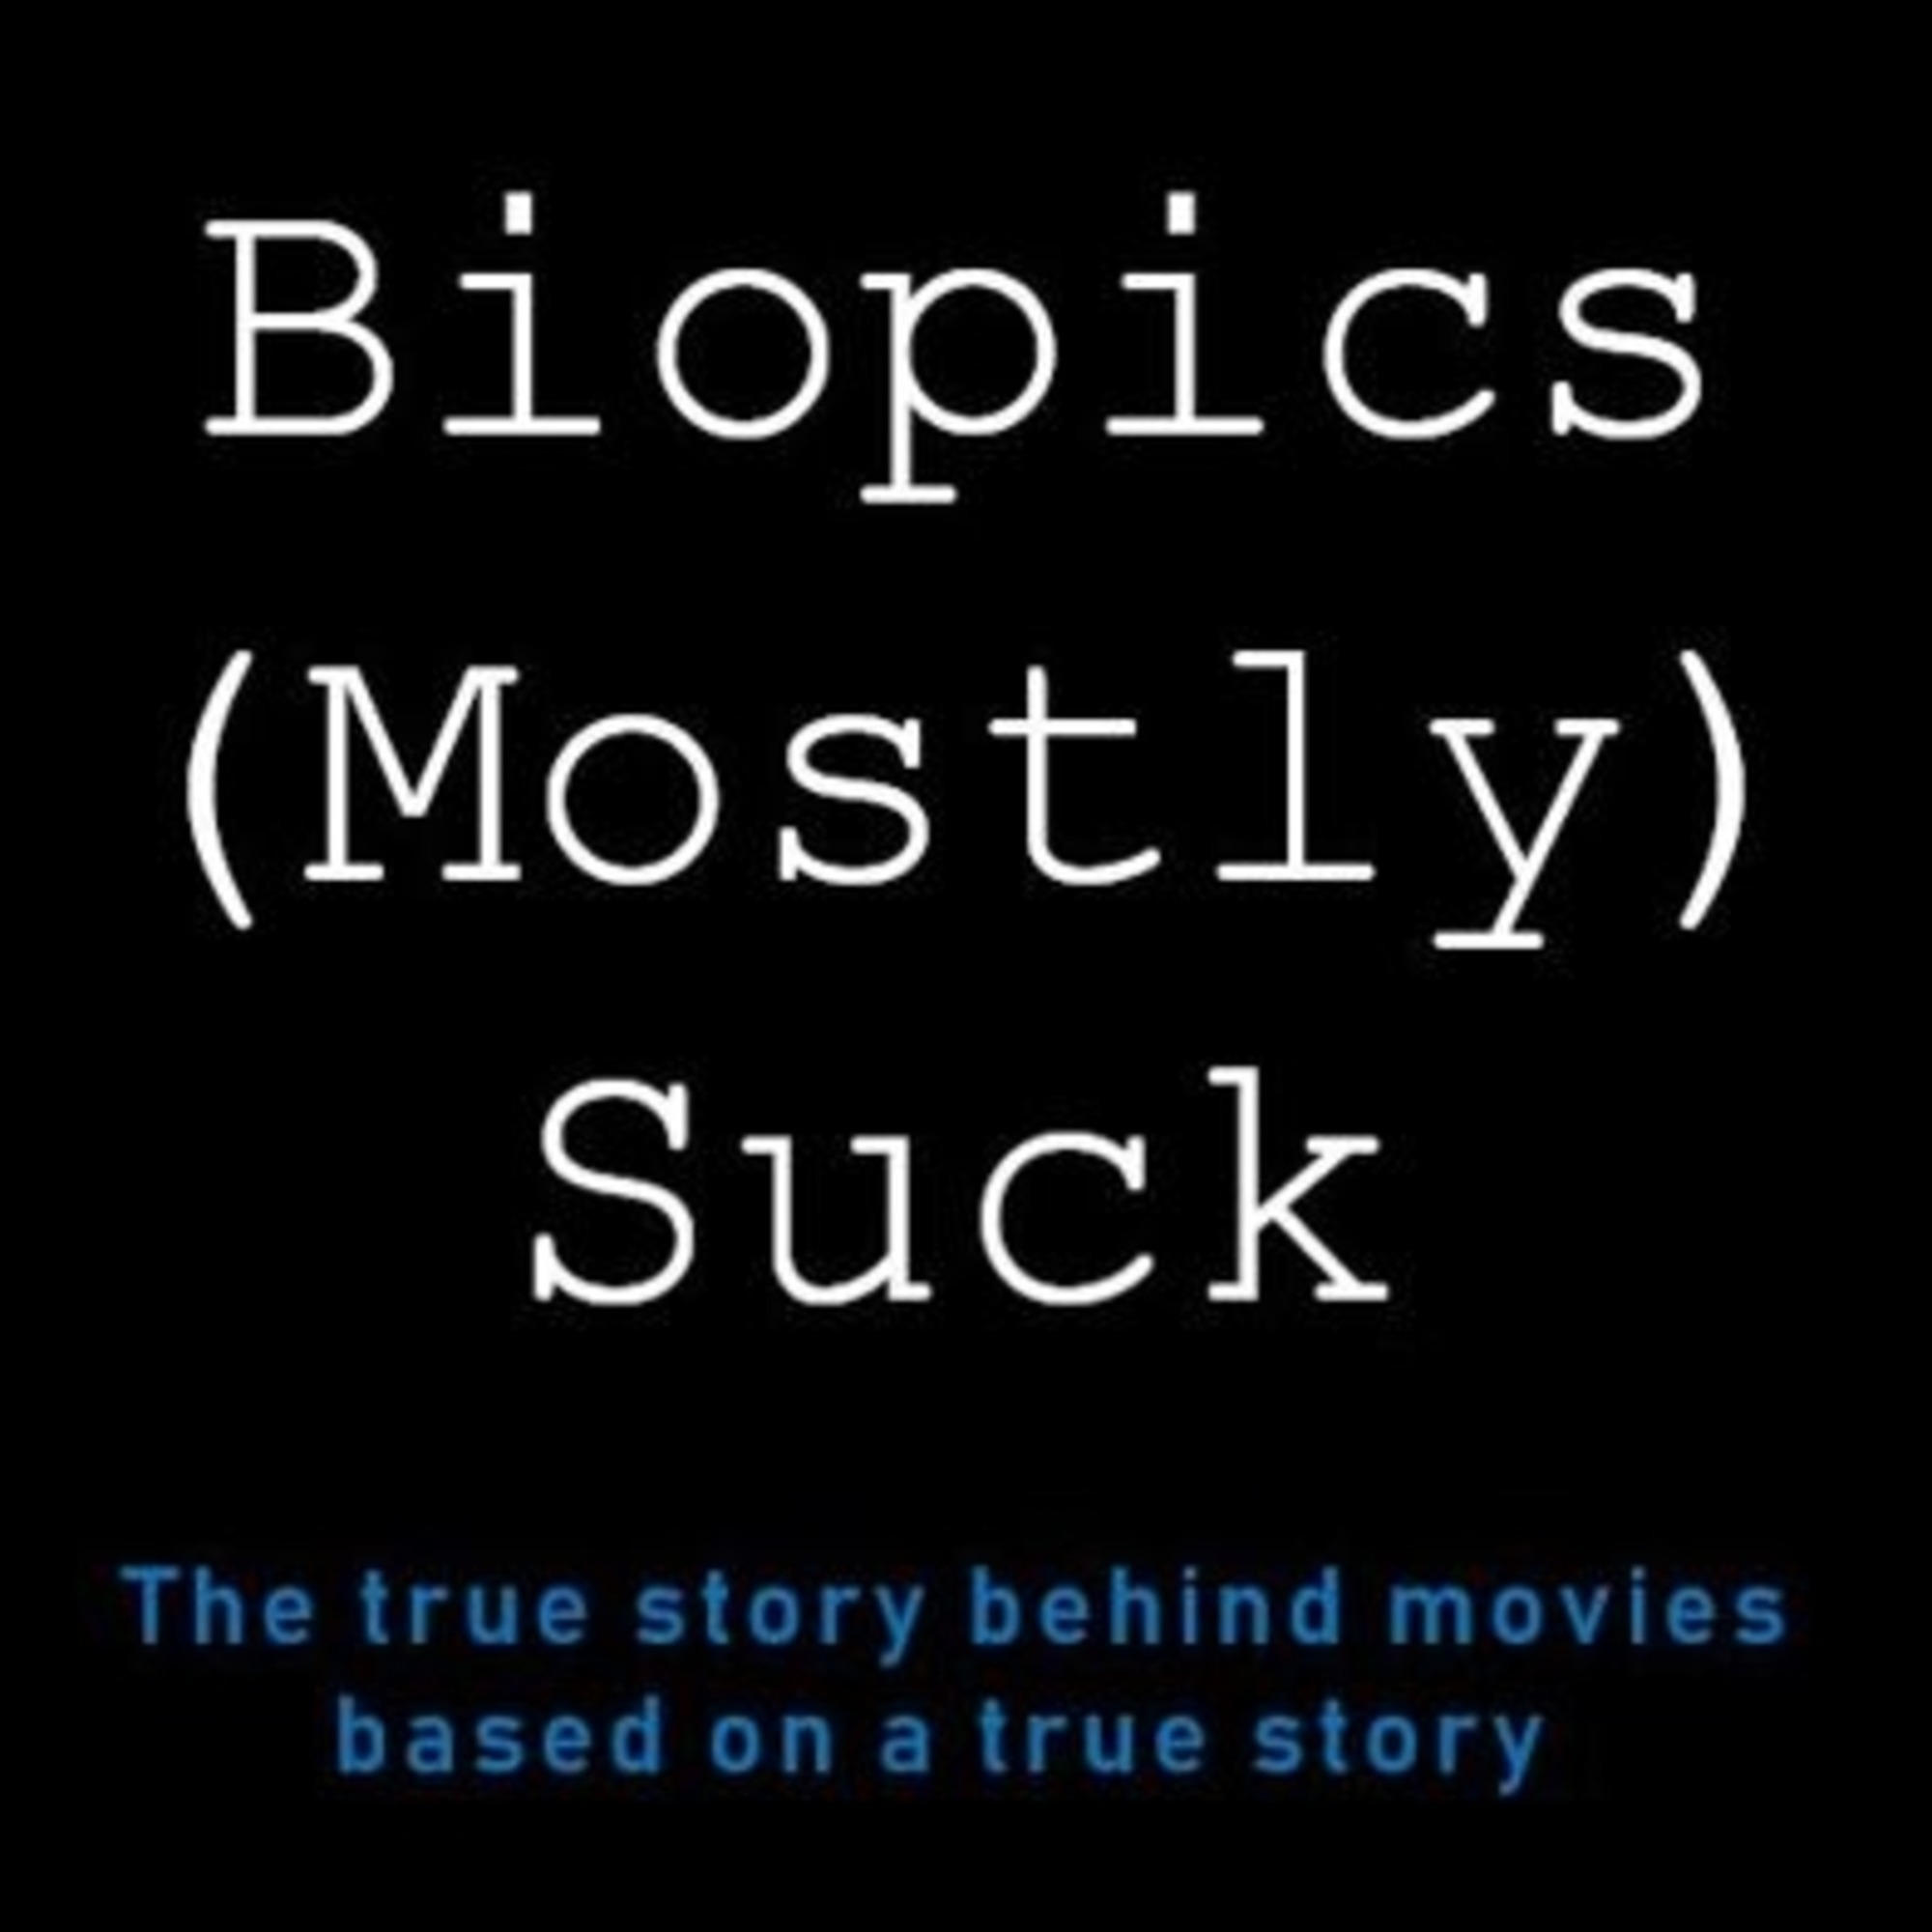 Biopics (Mostly) Suck - Norma Rae - Episode 15